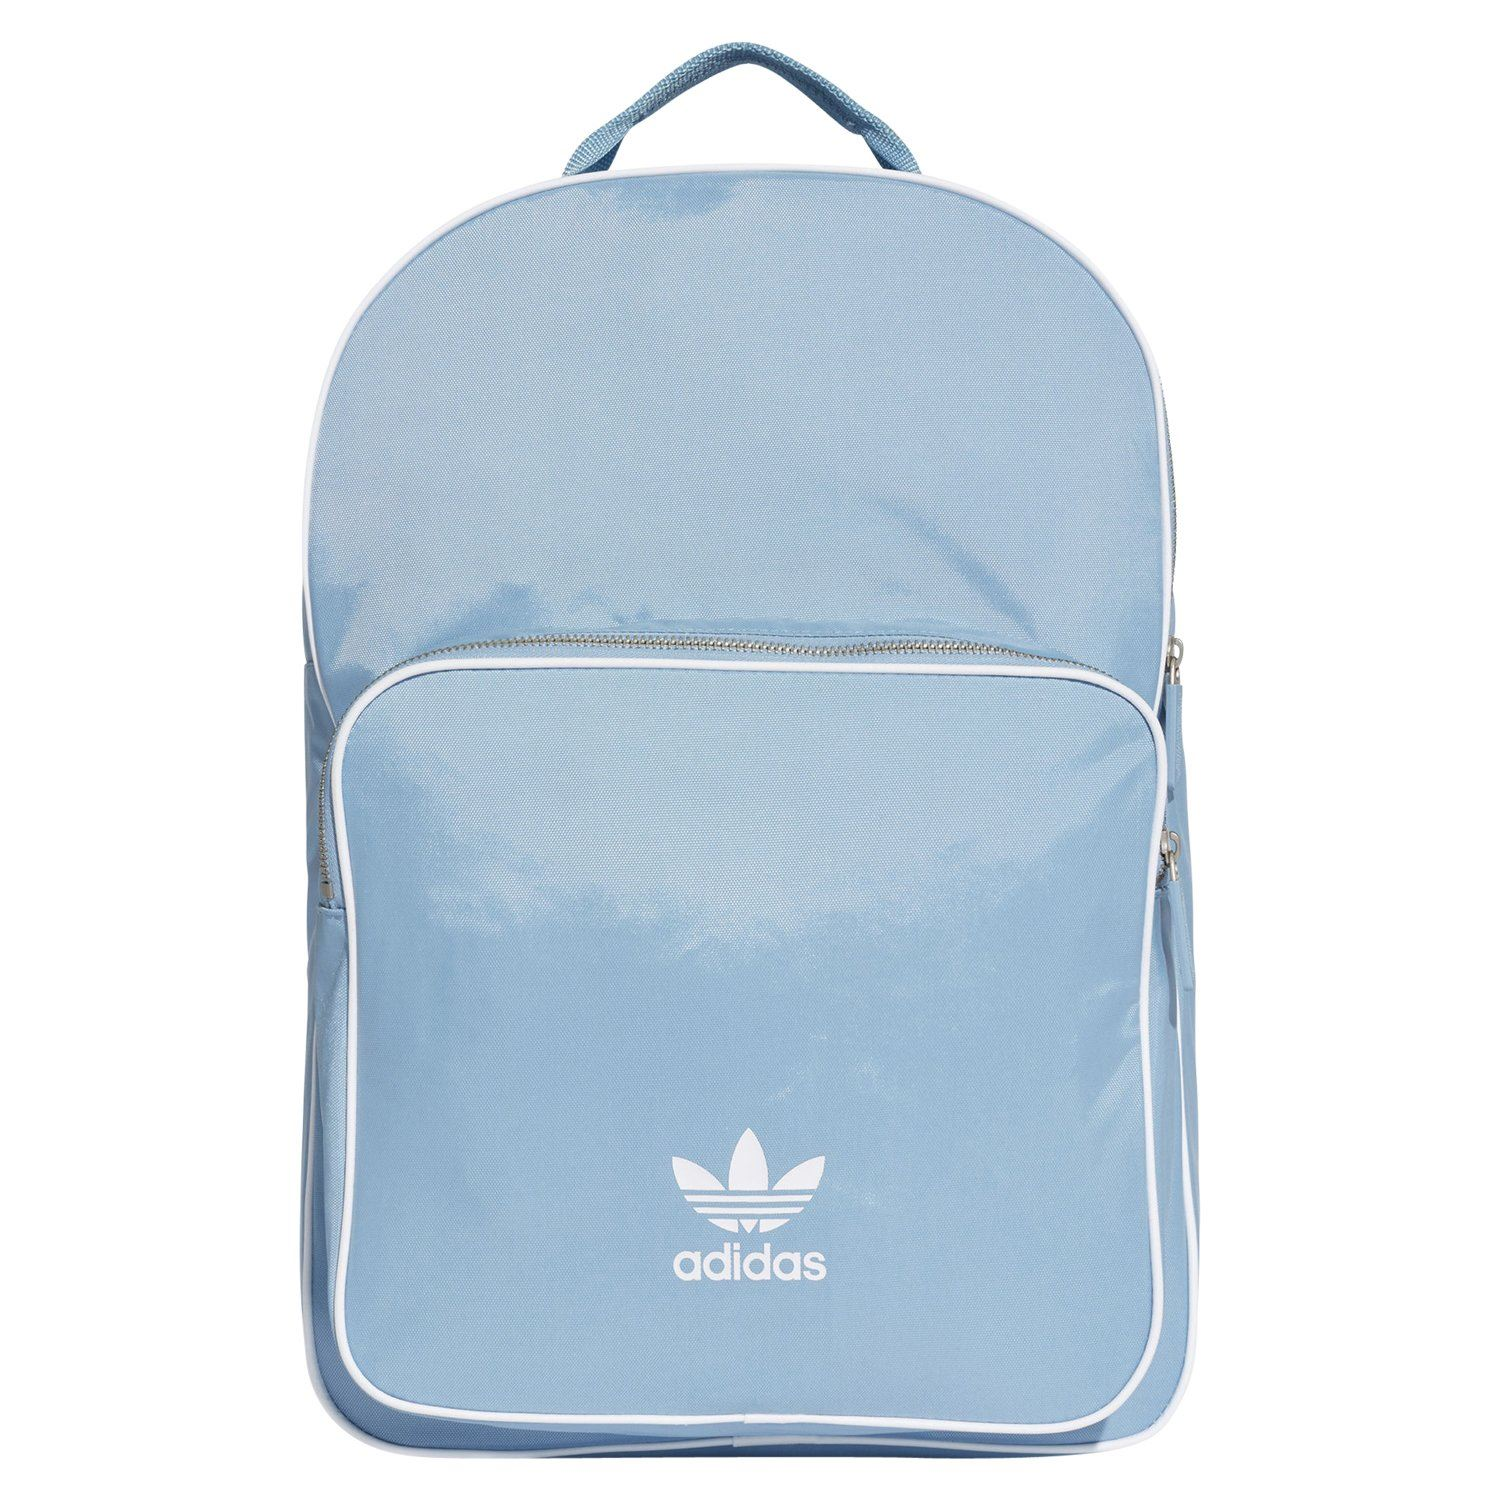 check out ed333 511d9 Details about adidas ORIGINALS CLASSIC ADICOLOR BACKPACK BLUE TREFOIL RETRO  UNIVERSITY COLLEGE